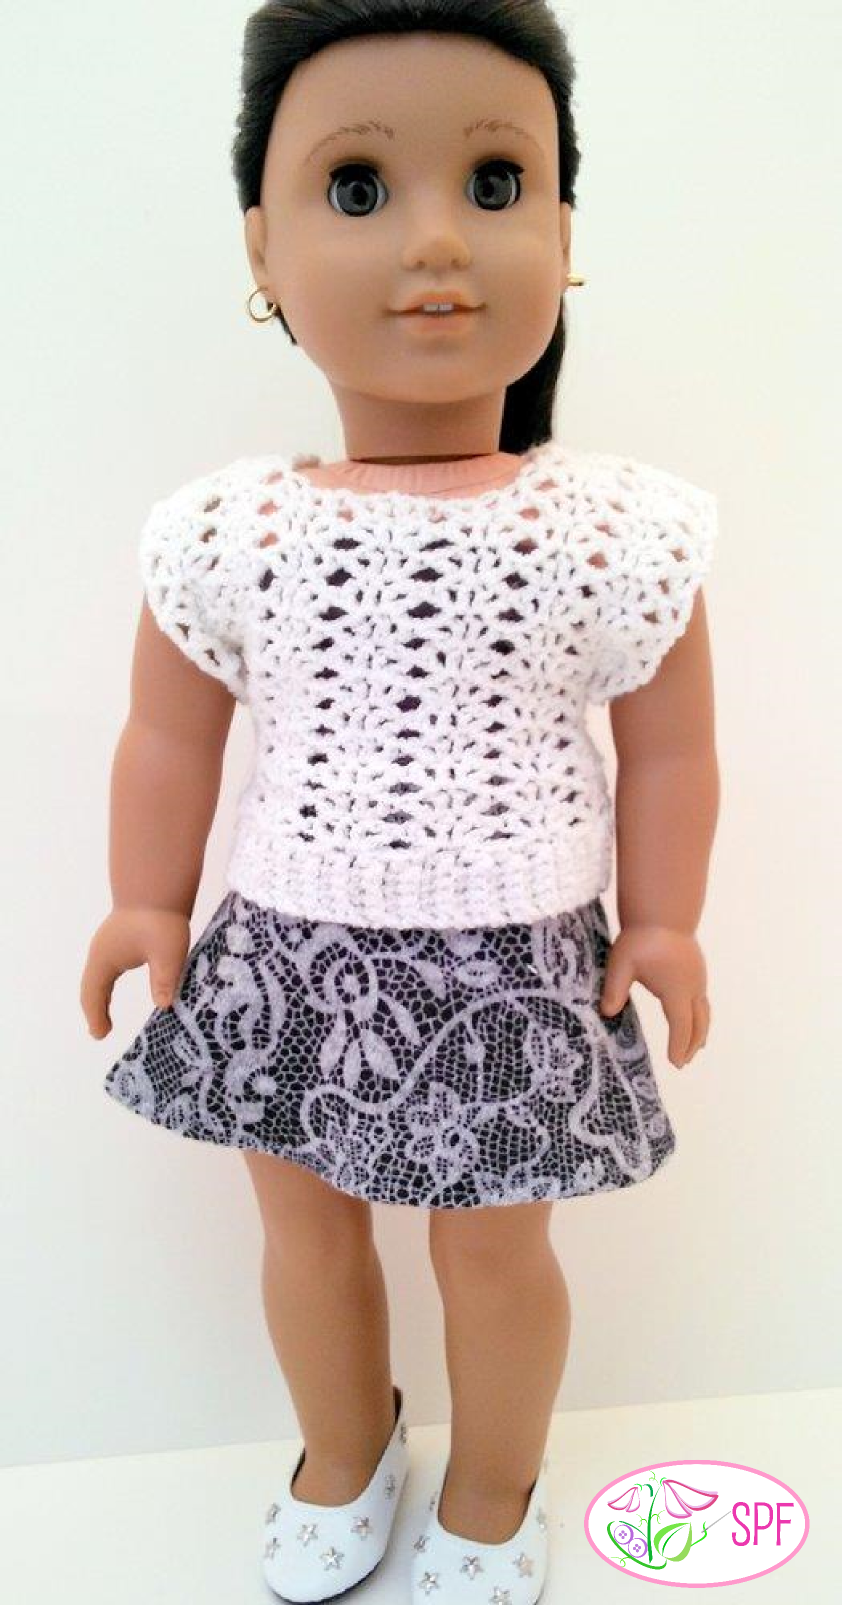 Barbie Crochet Clothes and Accessories | Pearltrees | 1605x842